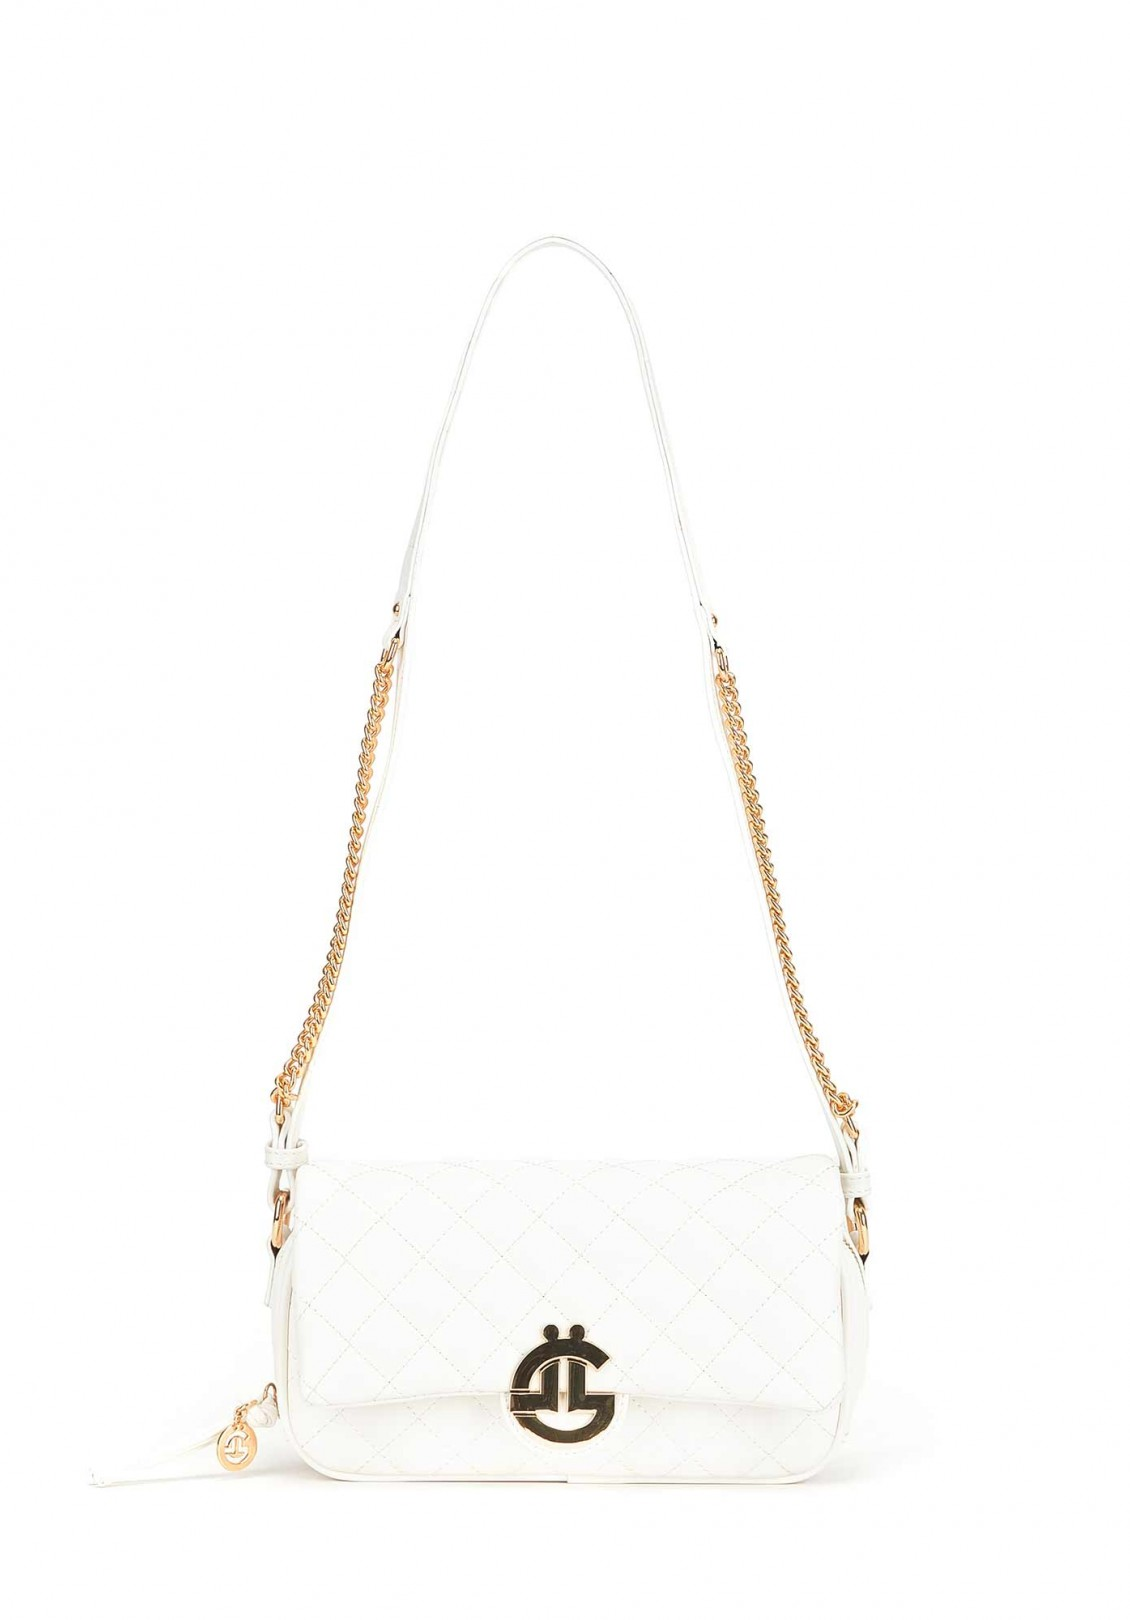 SHOULDER BAG - GBDA1651 - GAELLE PARIS